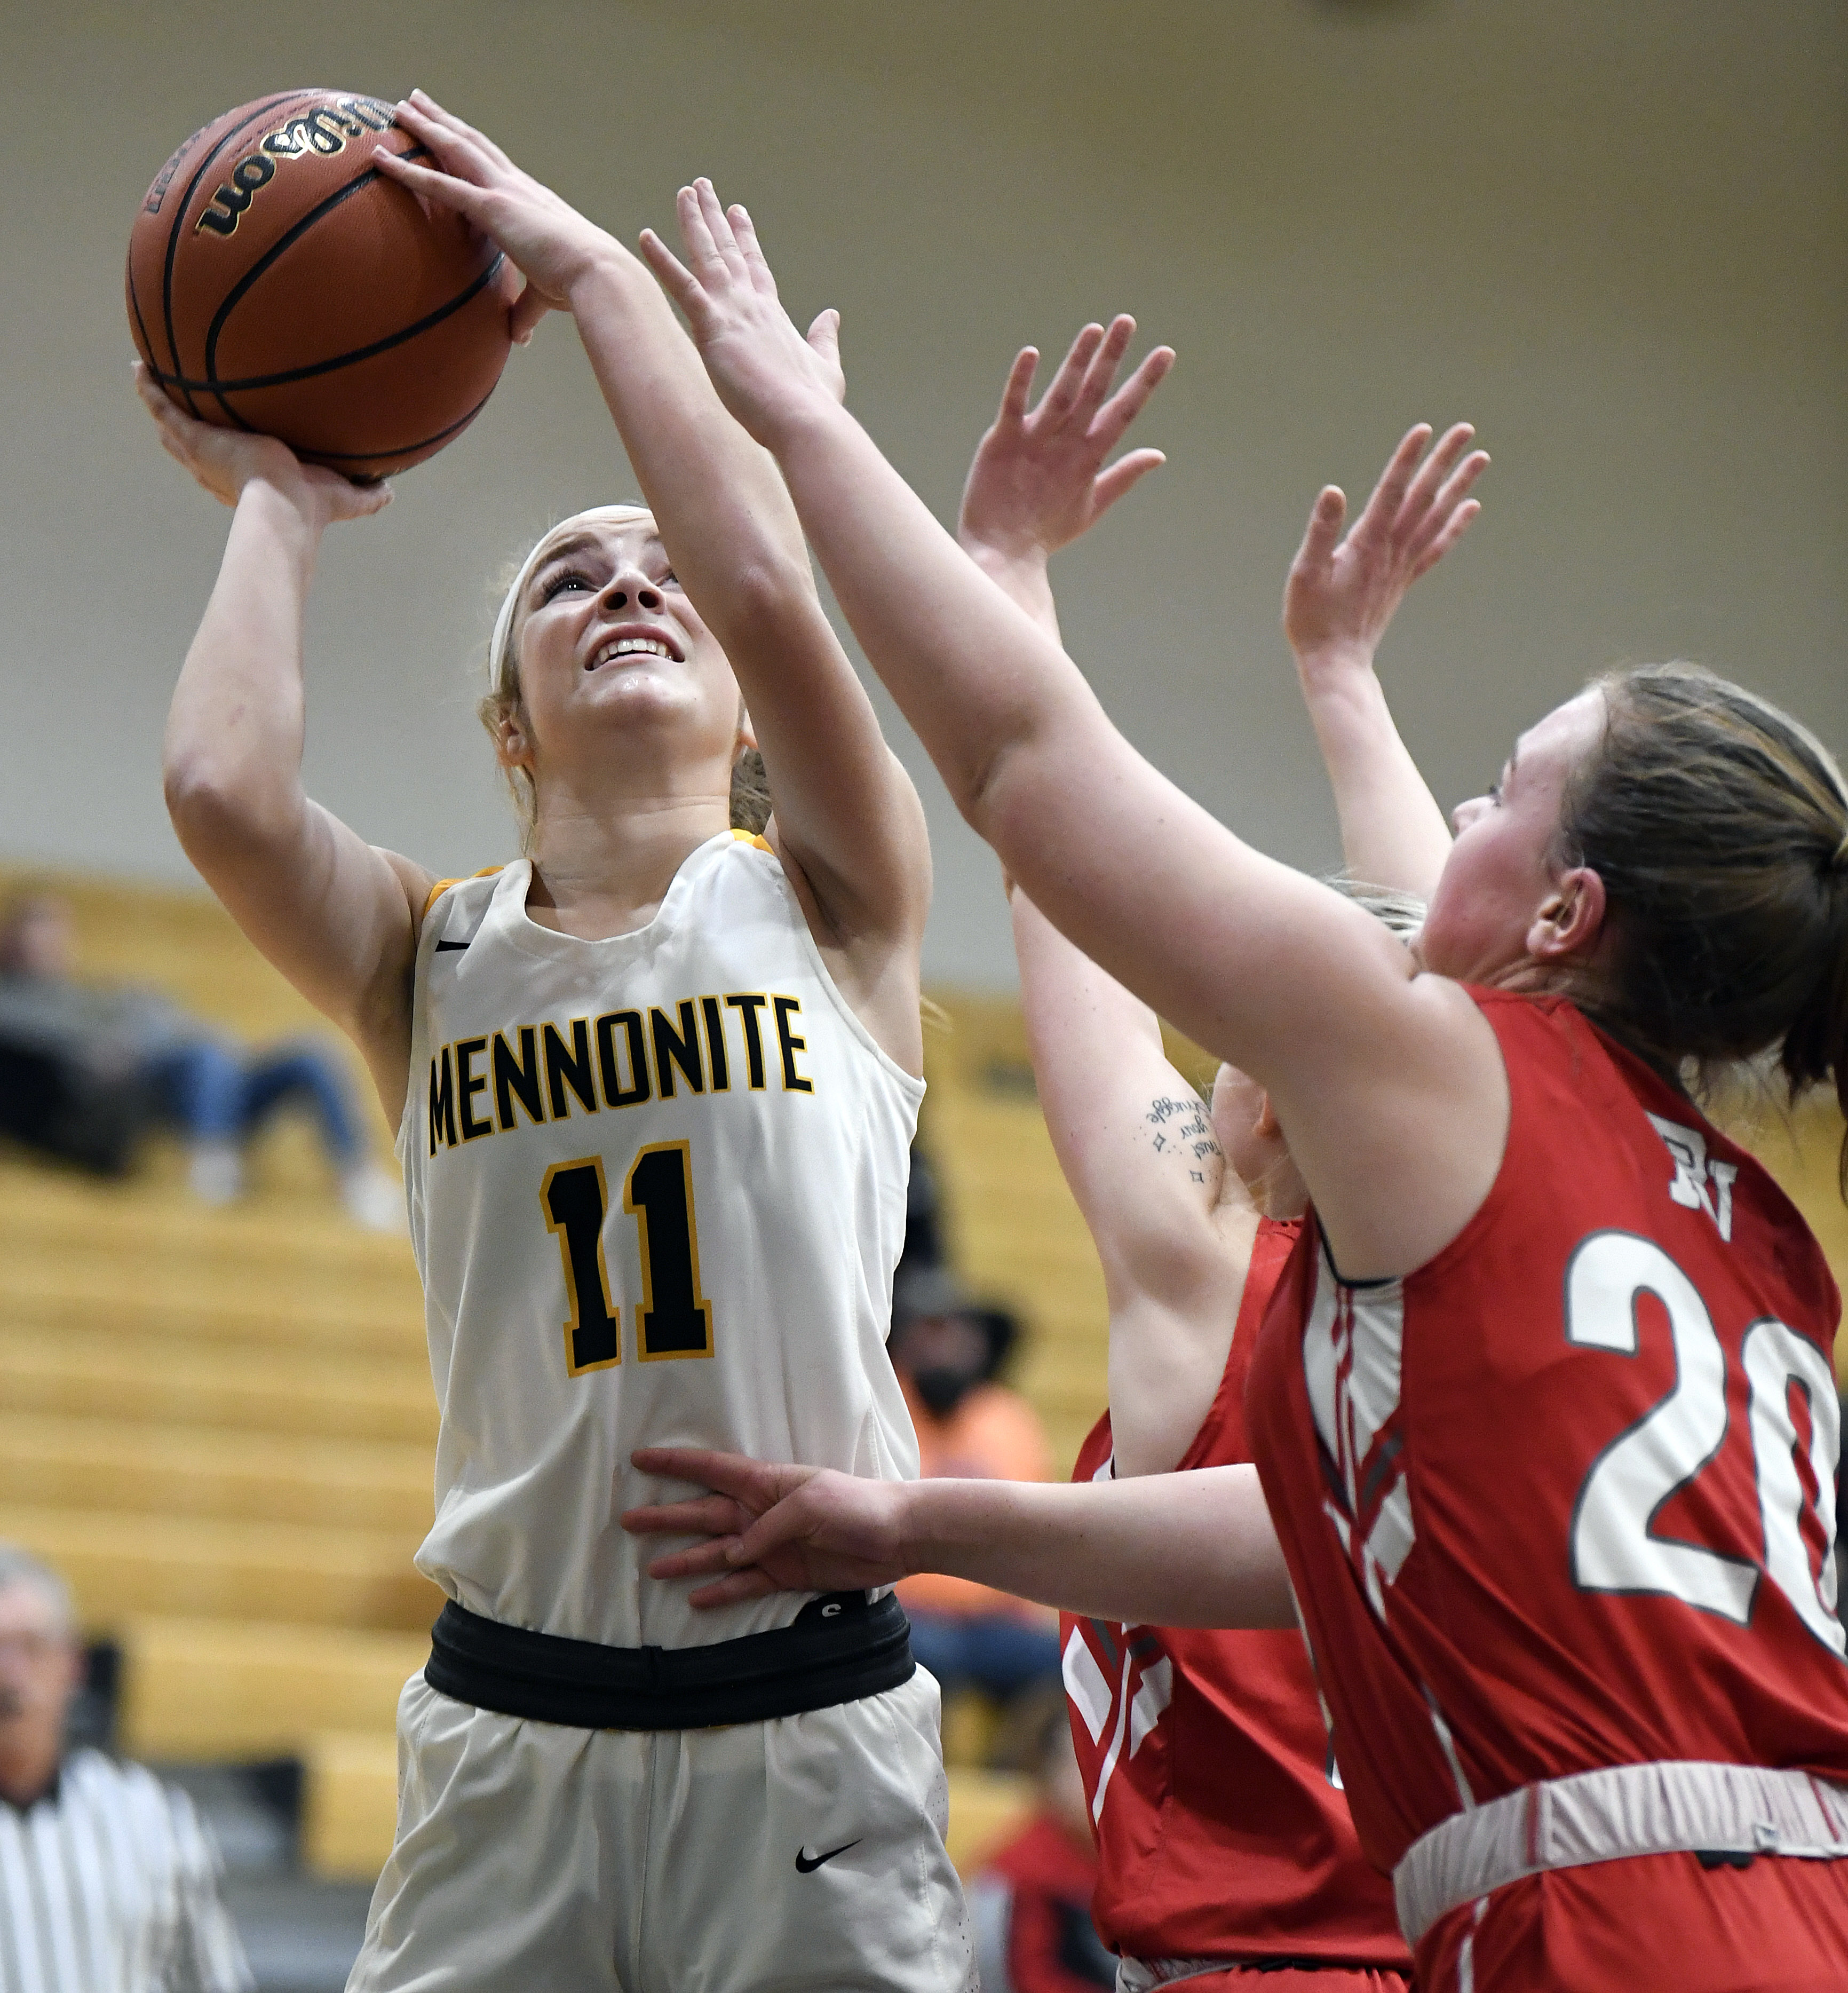 Mariah Wilson Pours In 31 Points Lancaster Mennonite Turns Up Defense In Key Section Win Over Pequea Valley Sports Lancasteronline Com